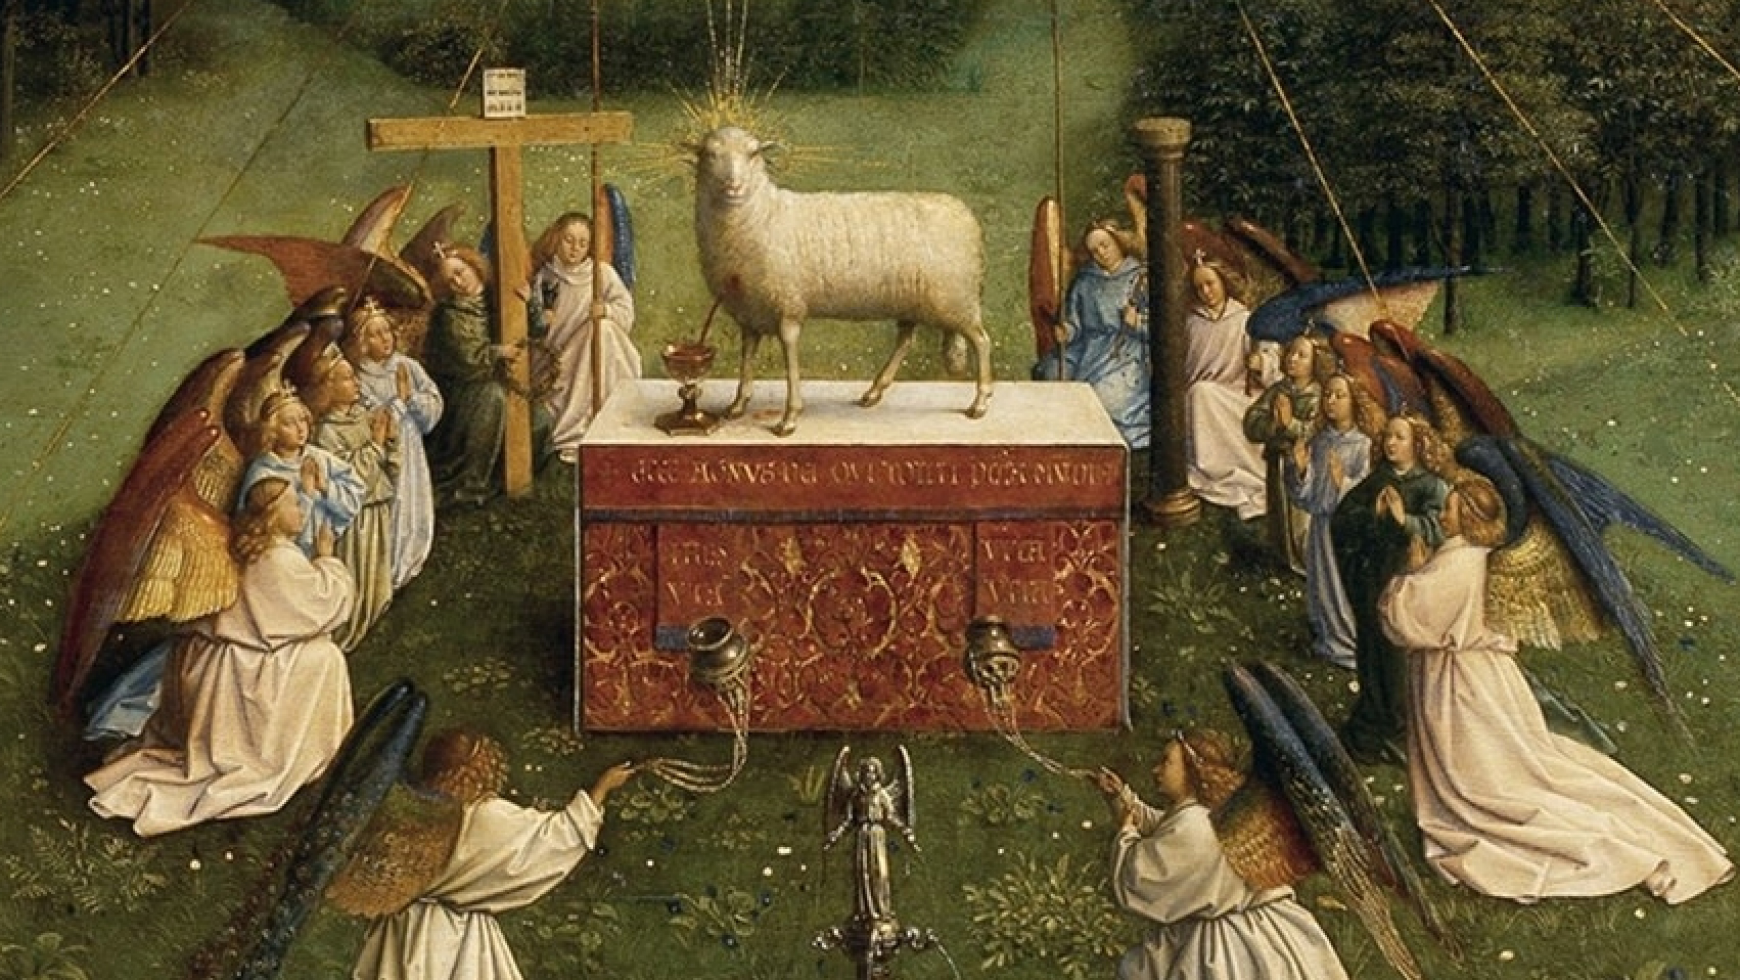 Newman's Reflection and Prayer to the Lamb of God